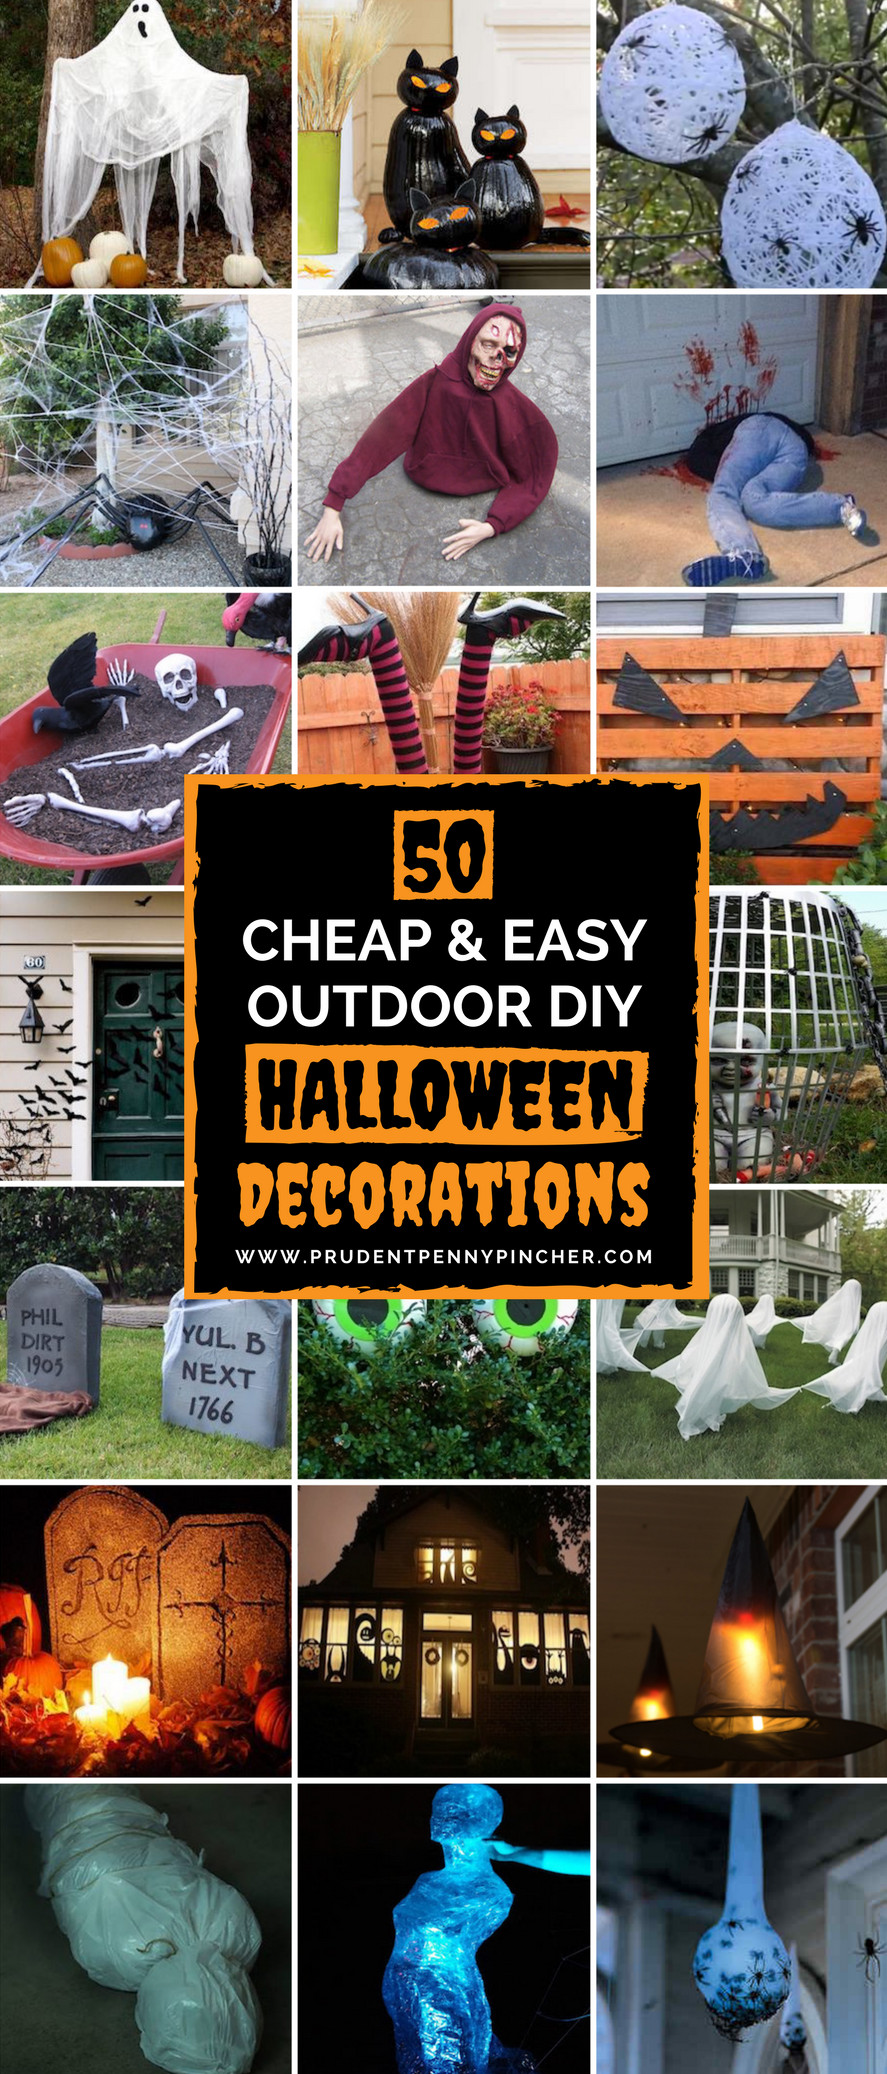 Outdoor Halloween Decorations On Sale  50 Cheap and Easy Outdoor Halloween Decor DIY Ideas